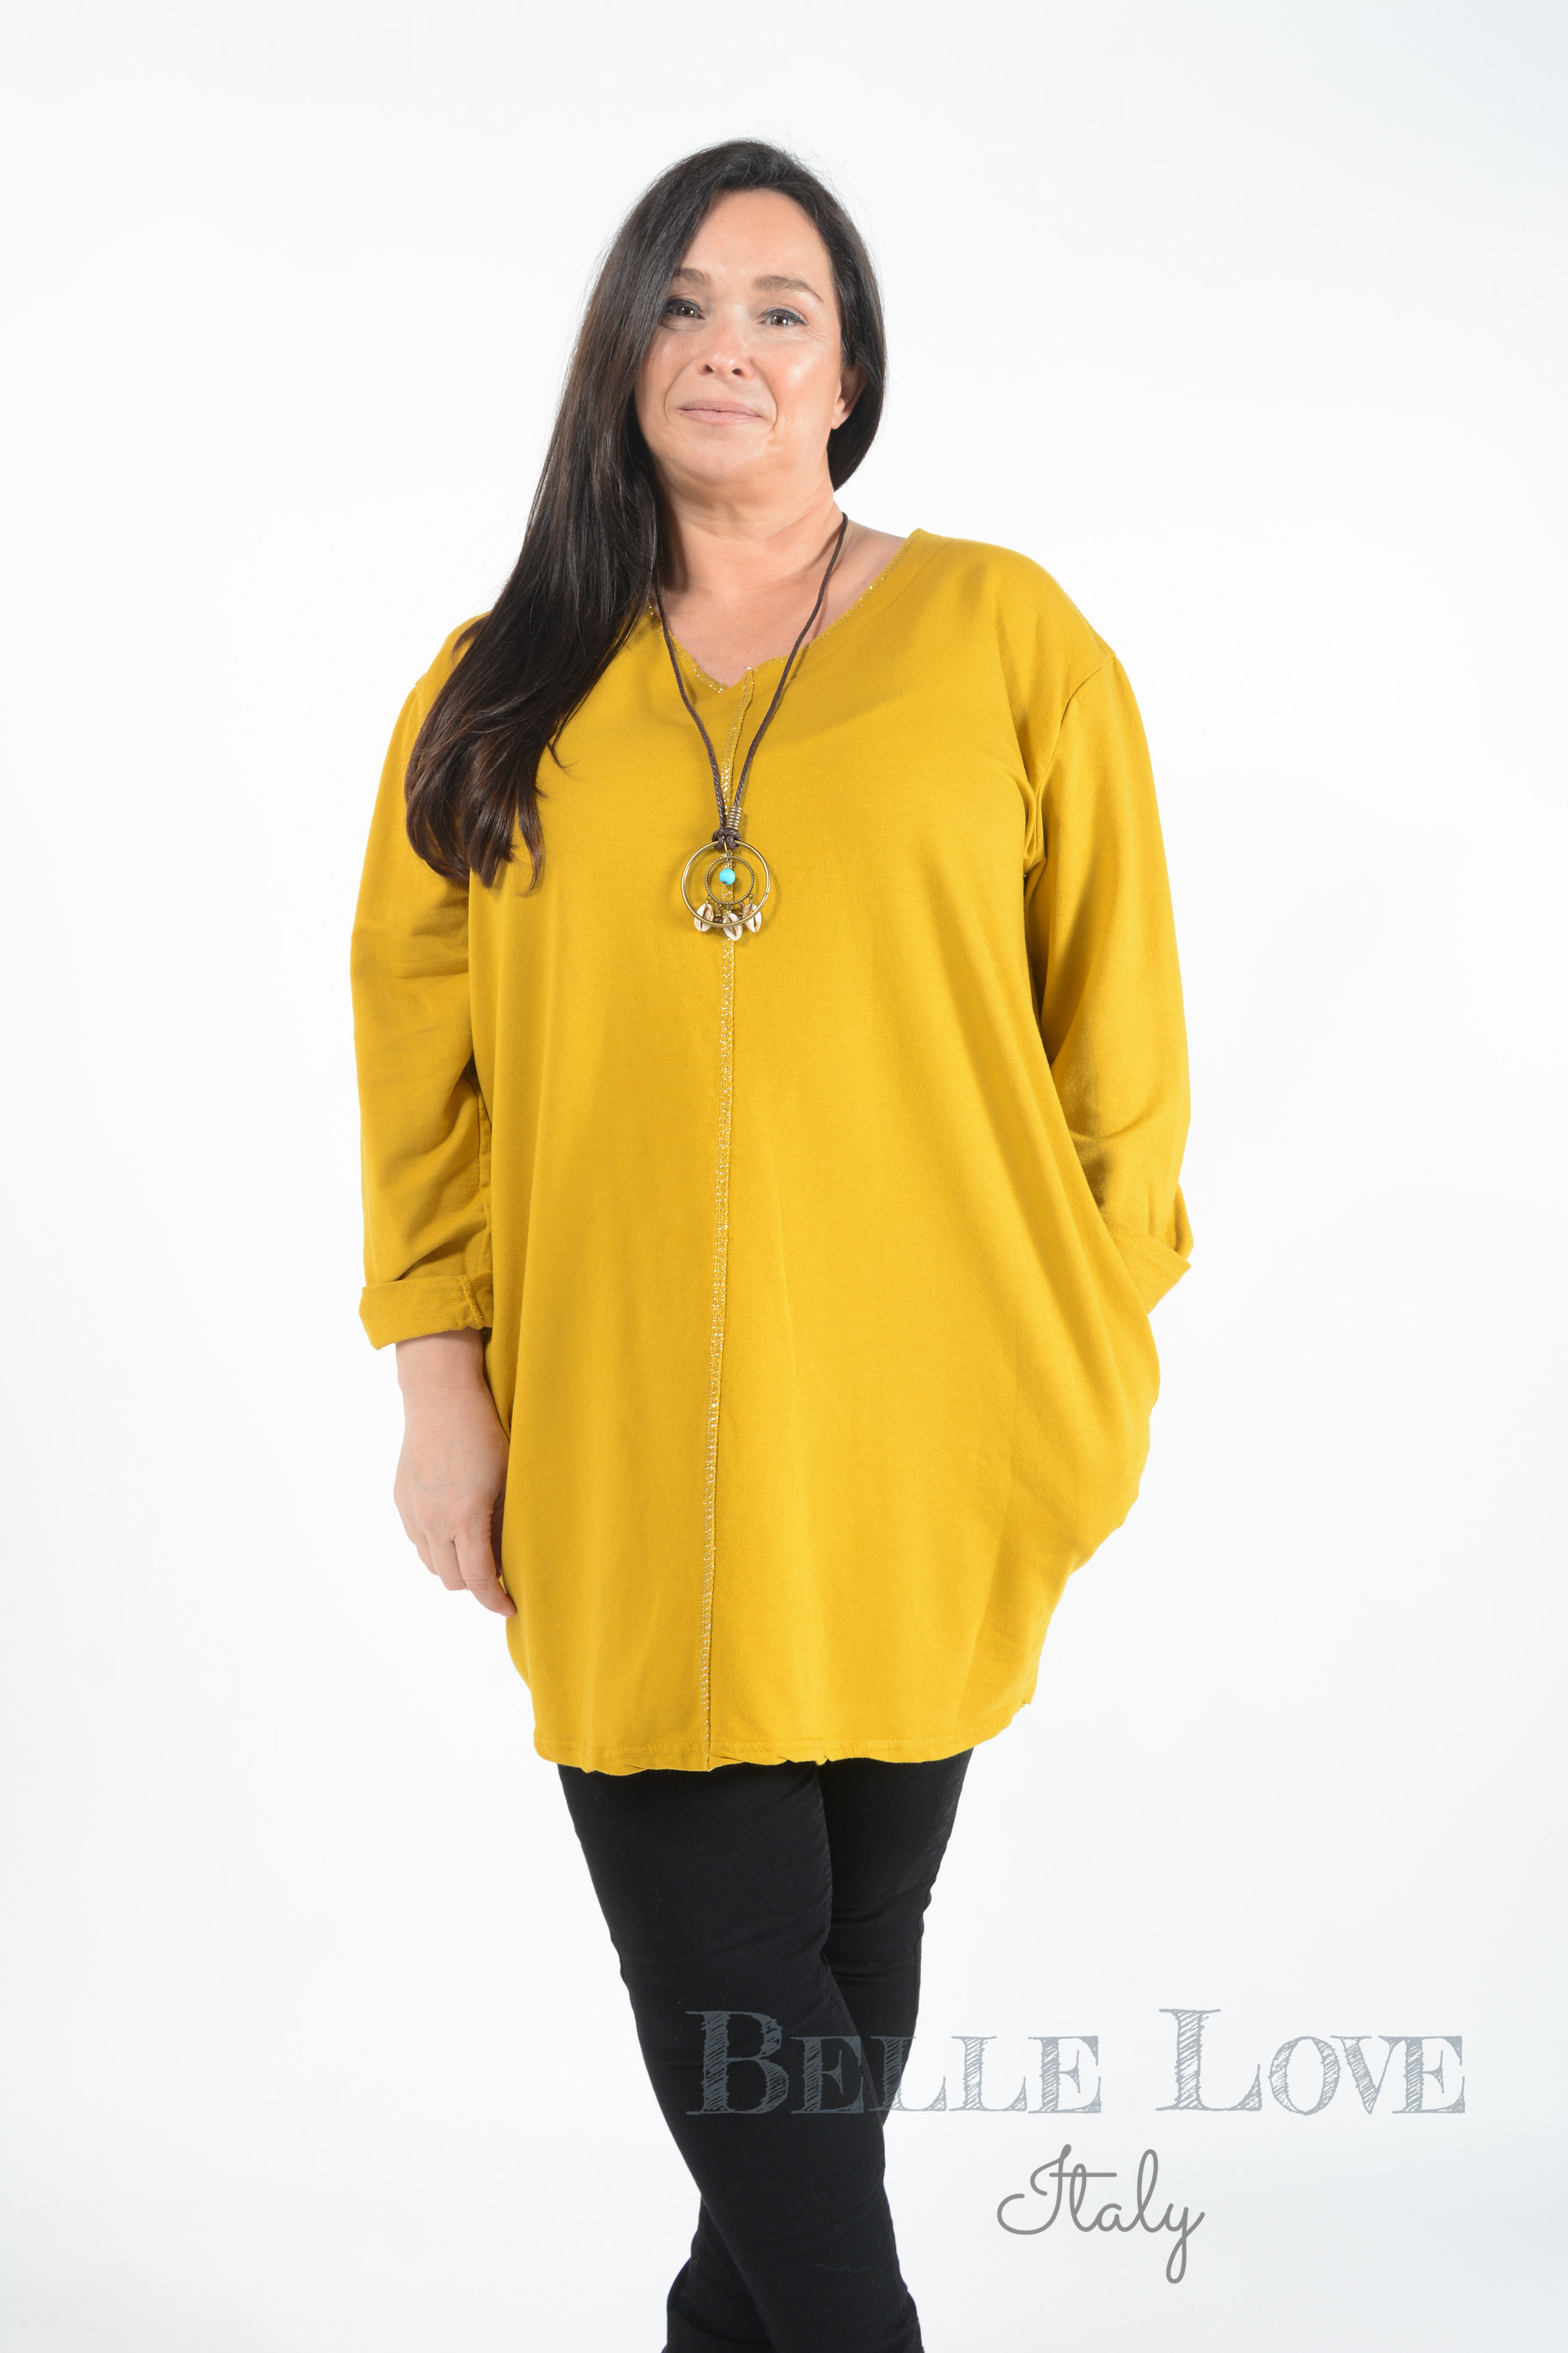 Belle Love Italy Claire Tunic